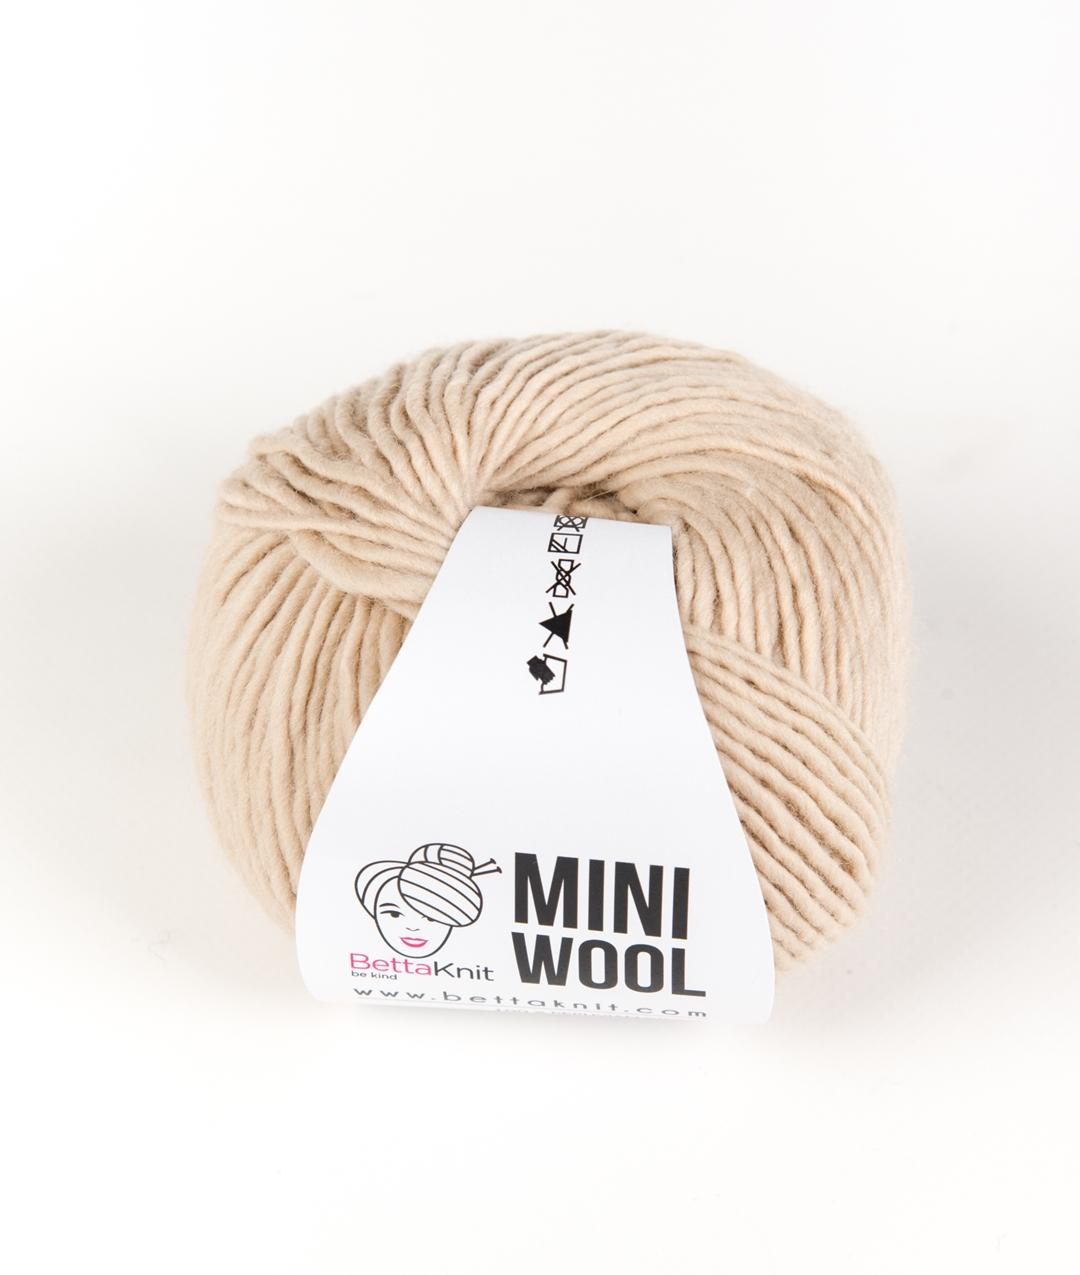 SALES - Wool - Mini Wool - 1